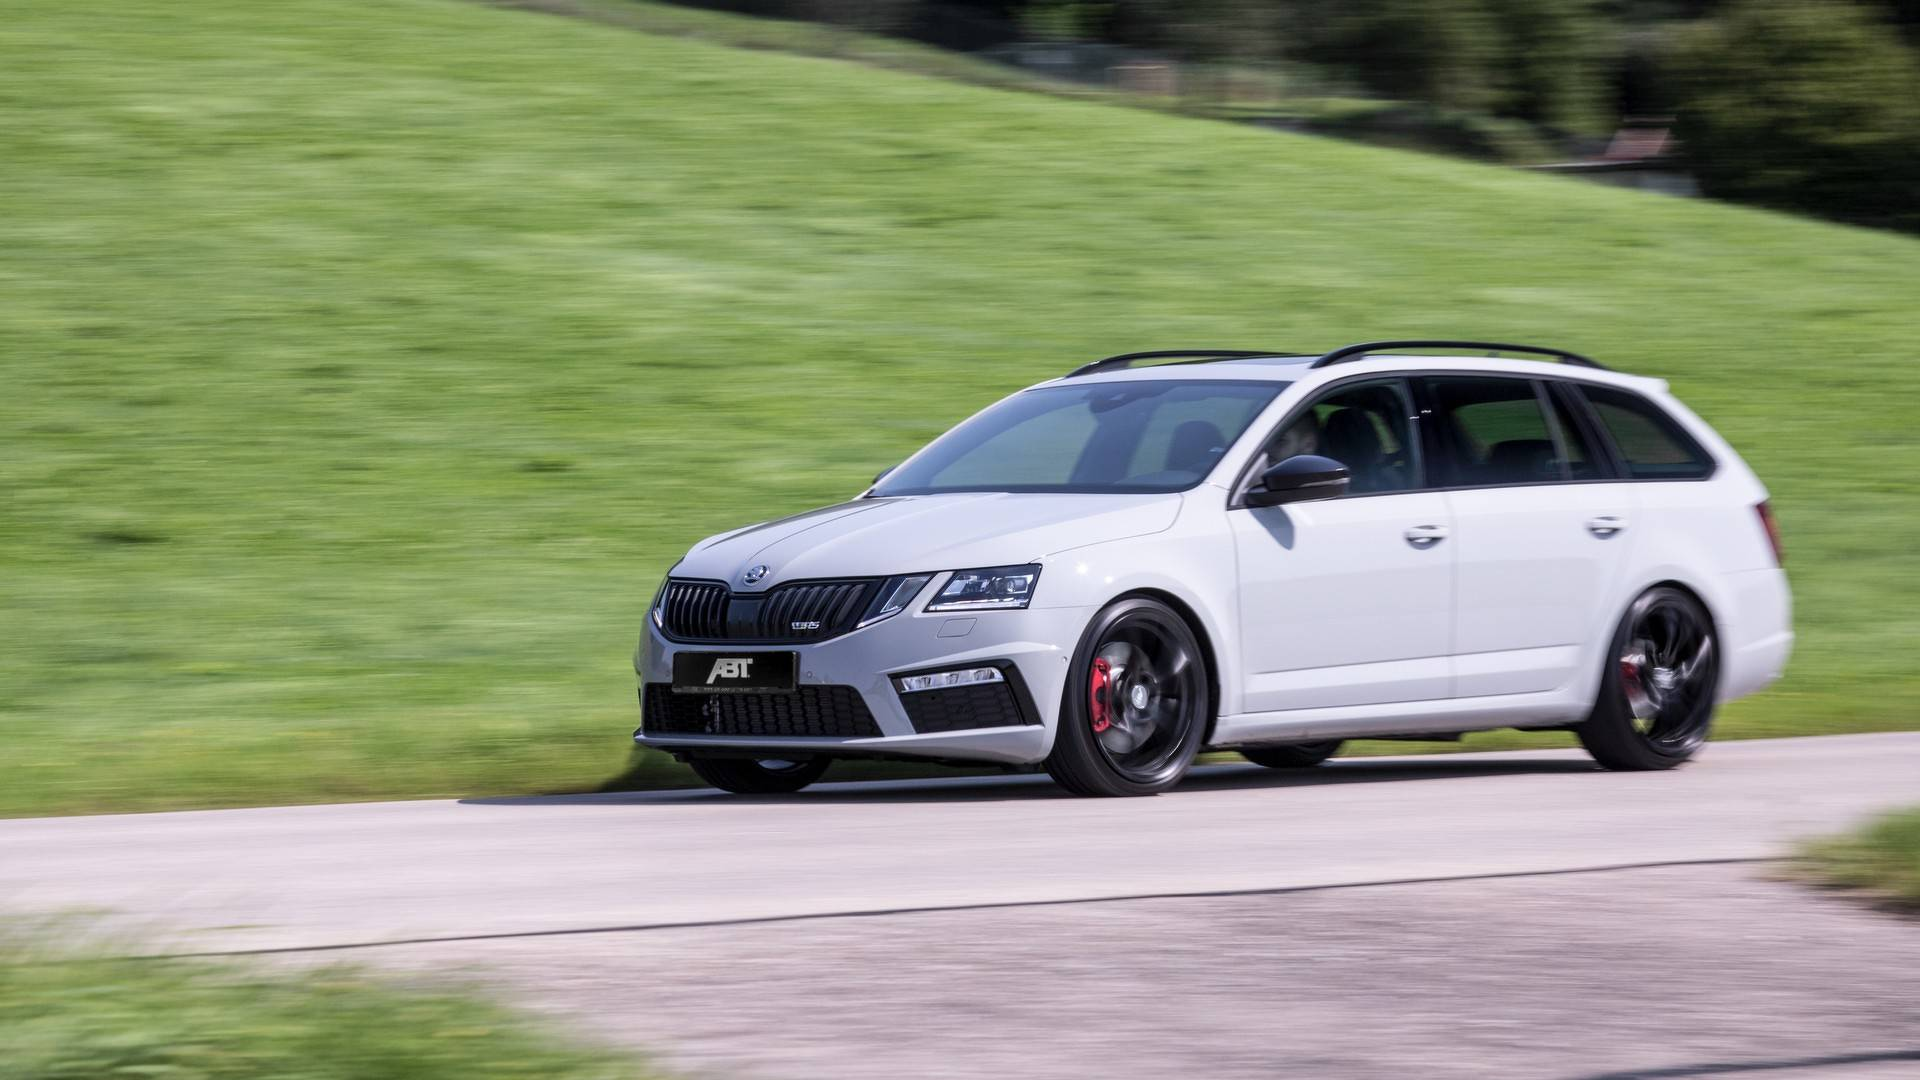 Skoda Octavia Rs By Abt Looks Normal But Hides A Secret 315 Hp